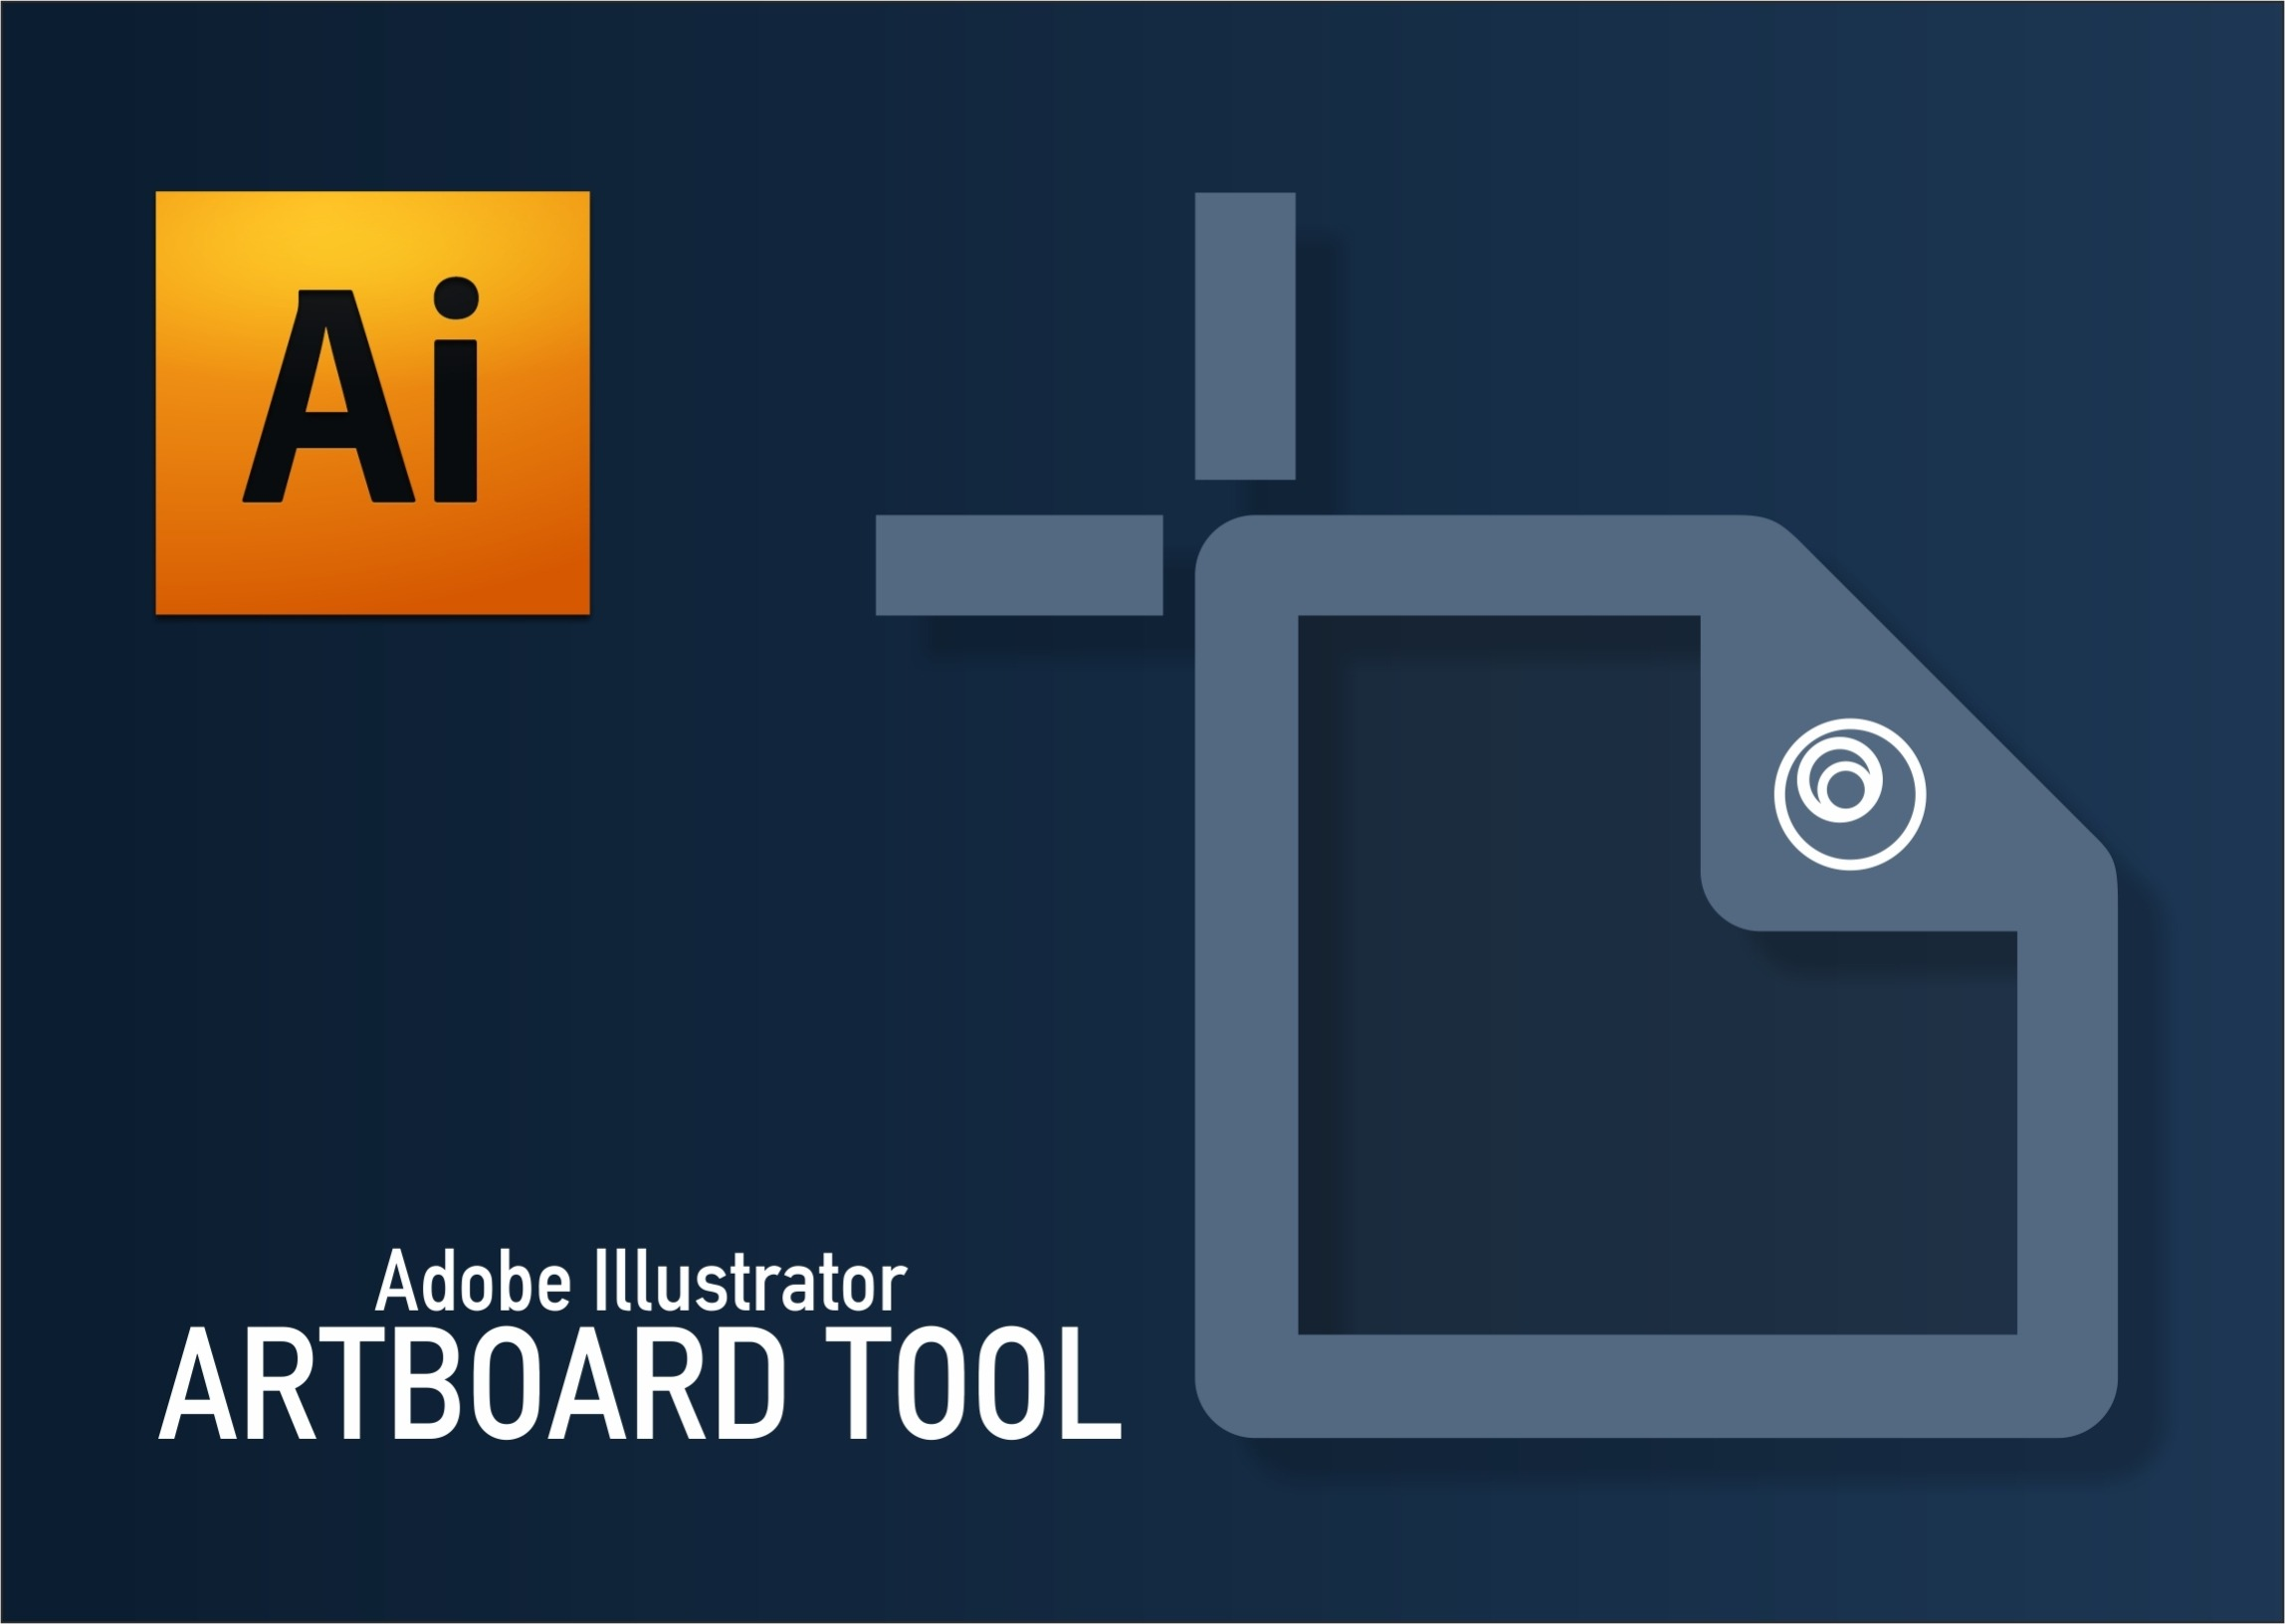 Adobe Illustrator-Artboard Tool